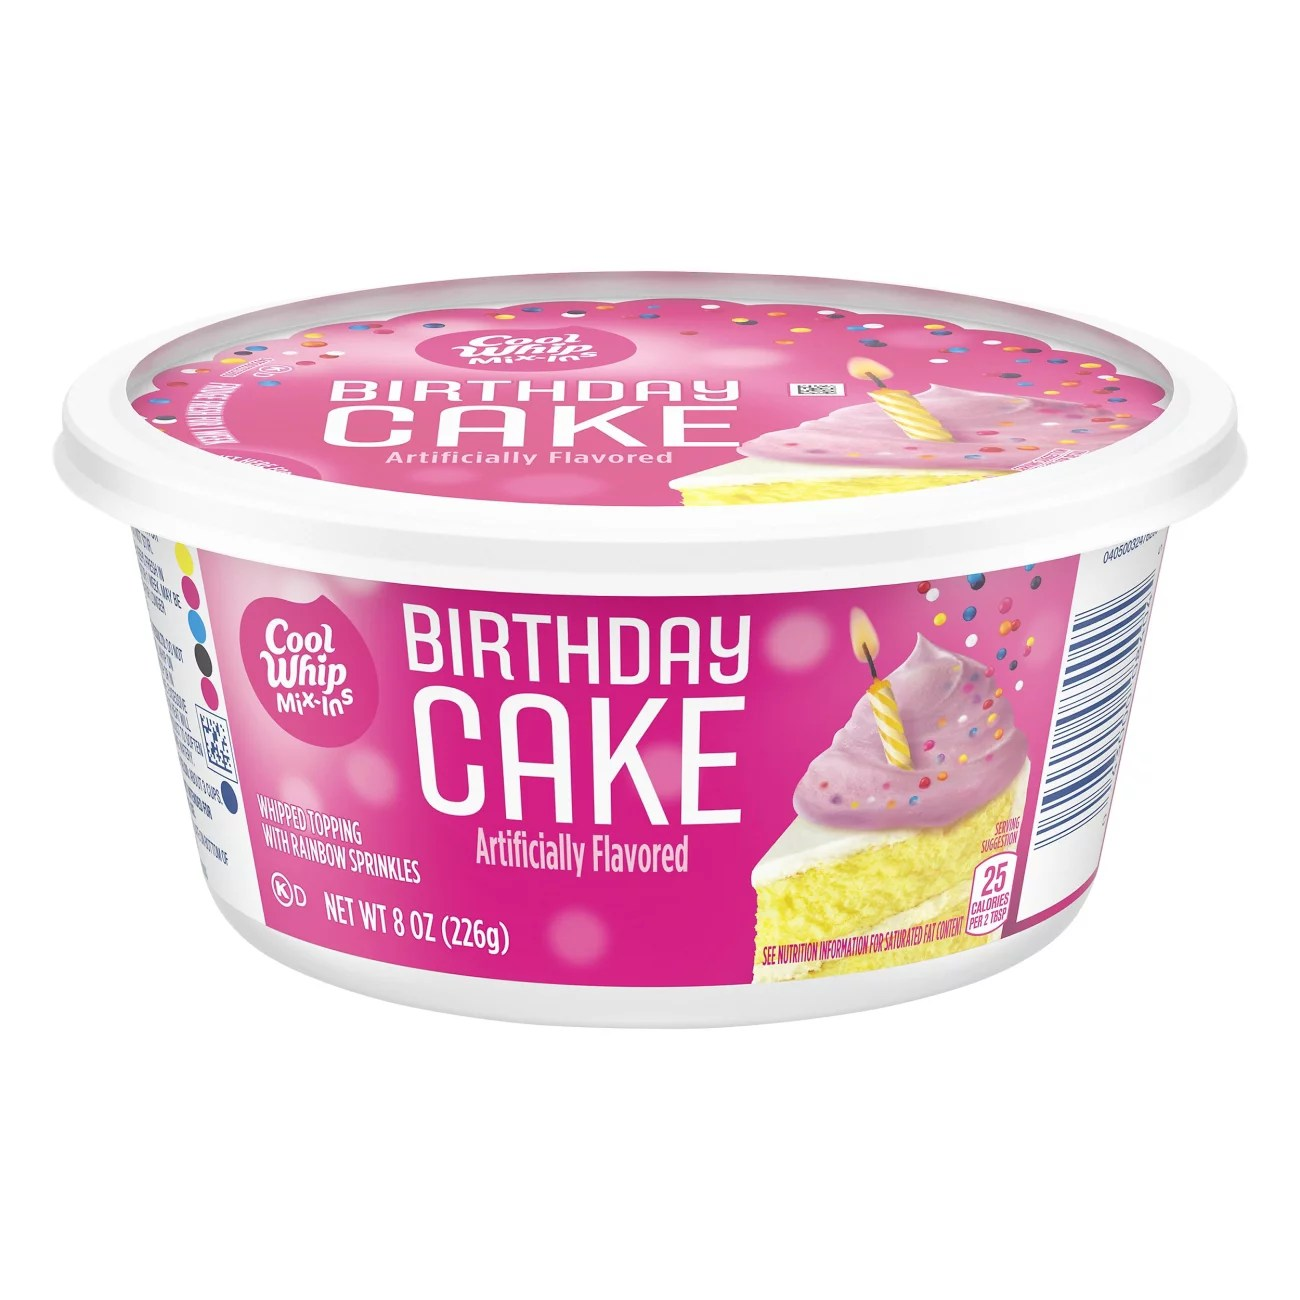 Kraft Cool Whip Mix Ins Birthday Cake Whipped Topping Shop Sundae Toppings At H E B